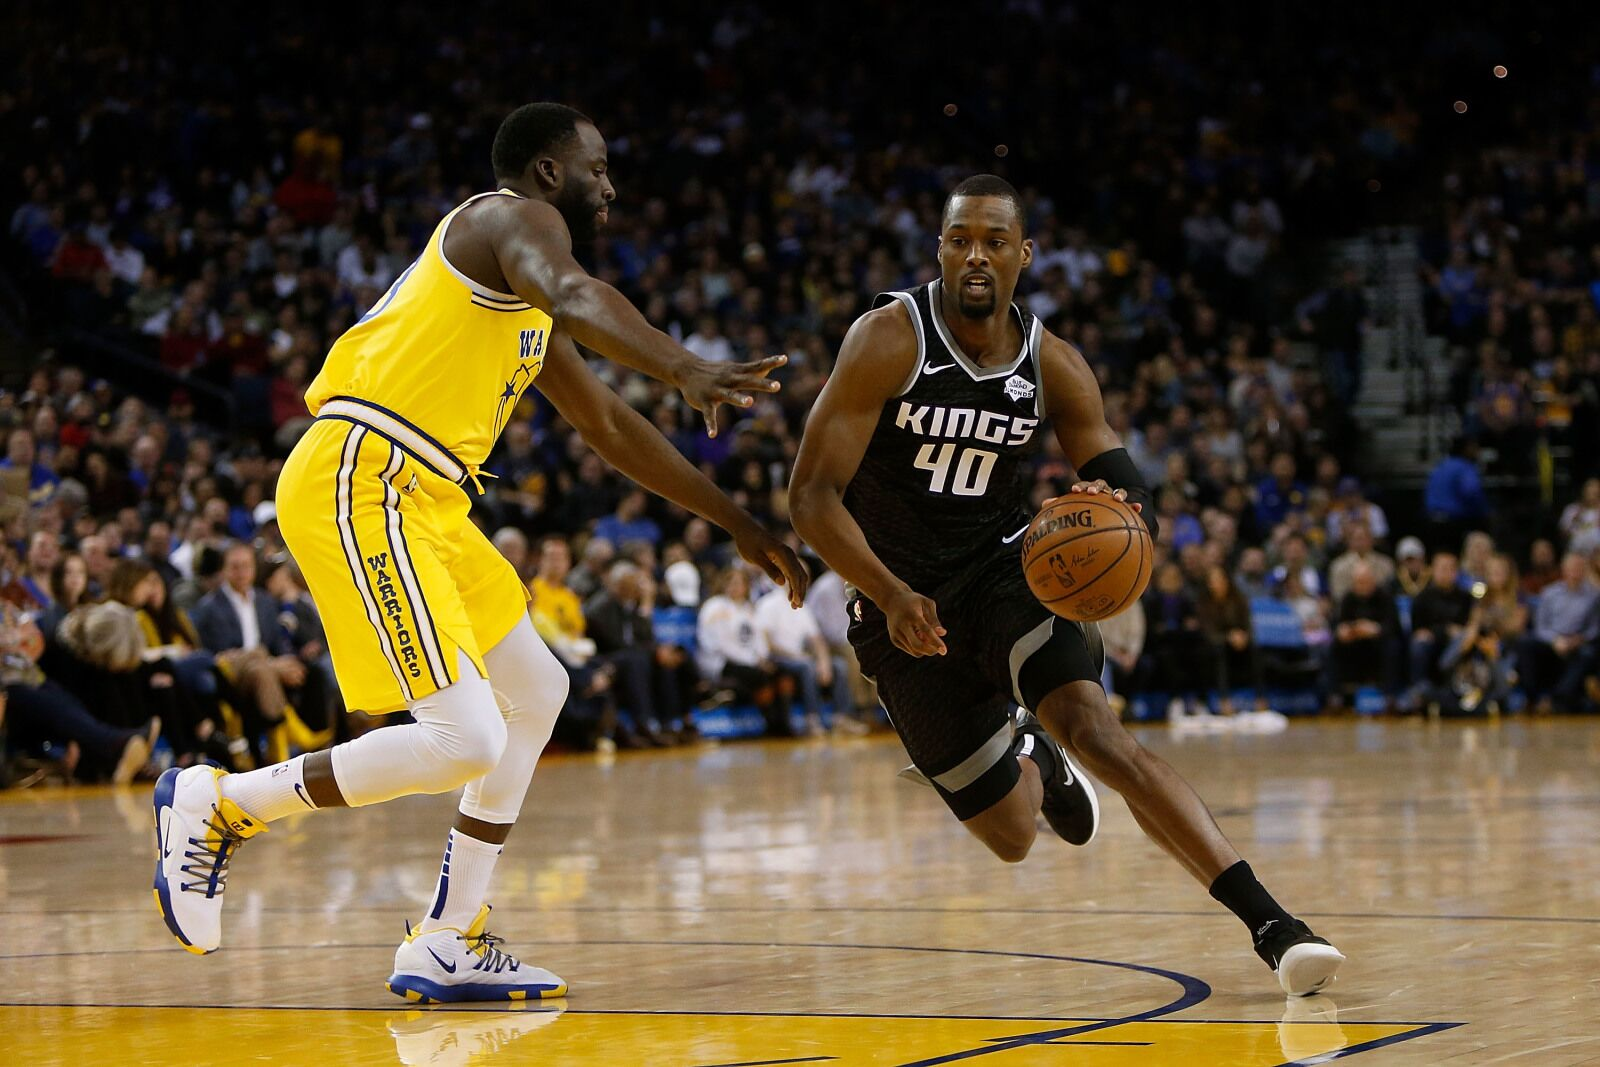 Kings vs. Warriors: Prediction, Injuries, & Betting Info